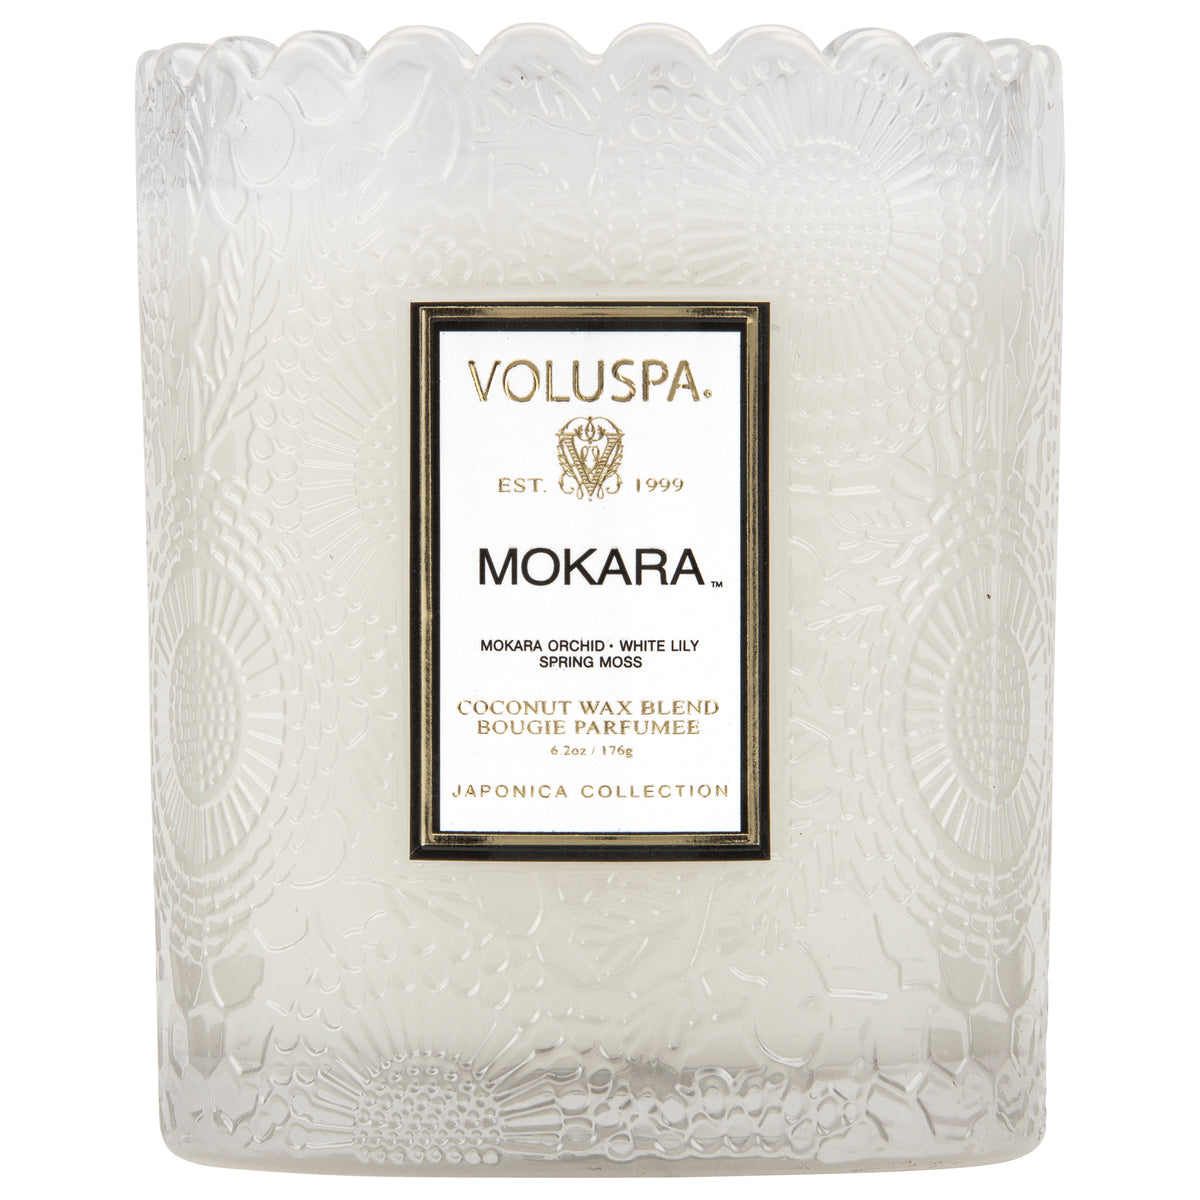 Mokara - Scalloped Edge Candle - 2